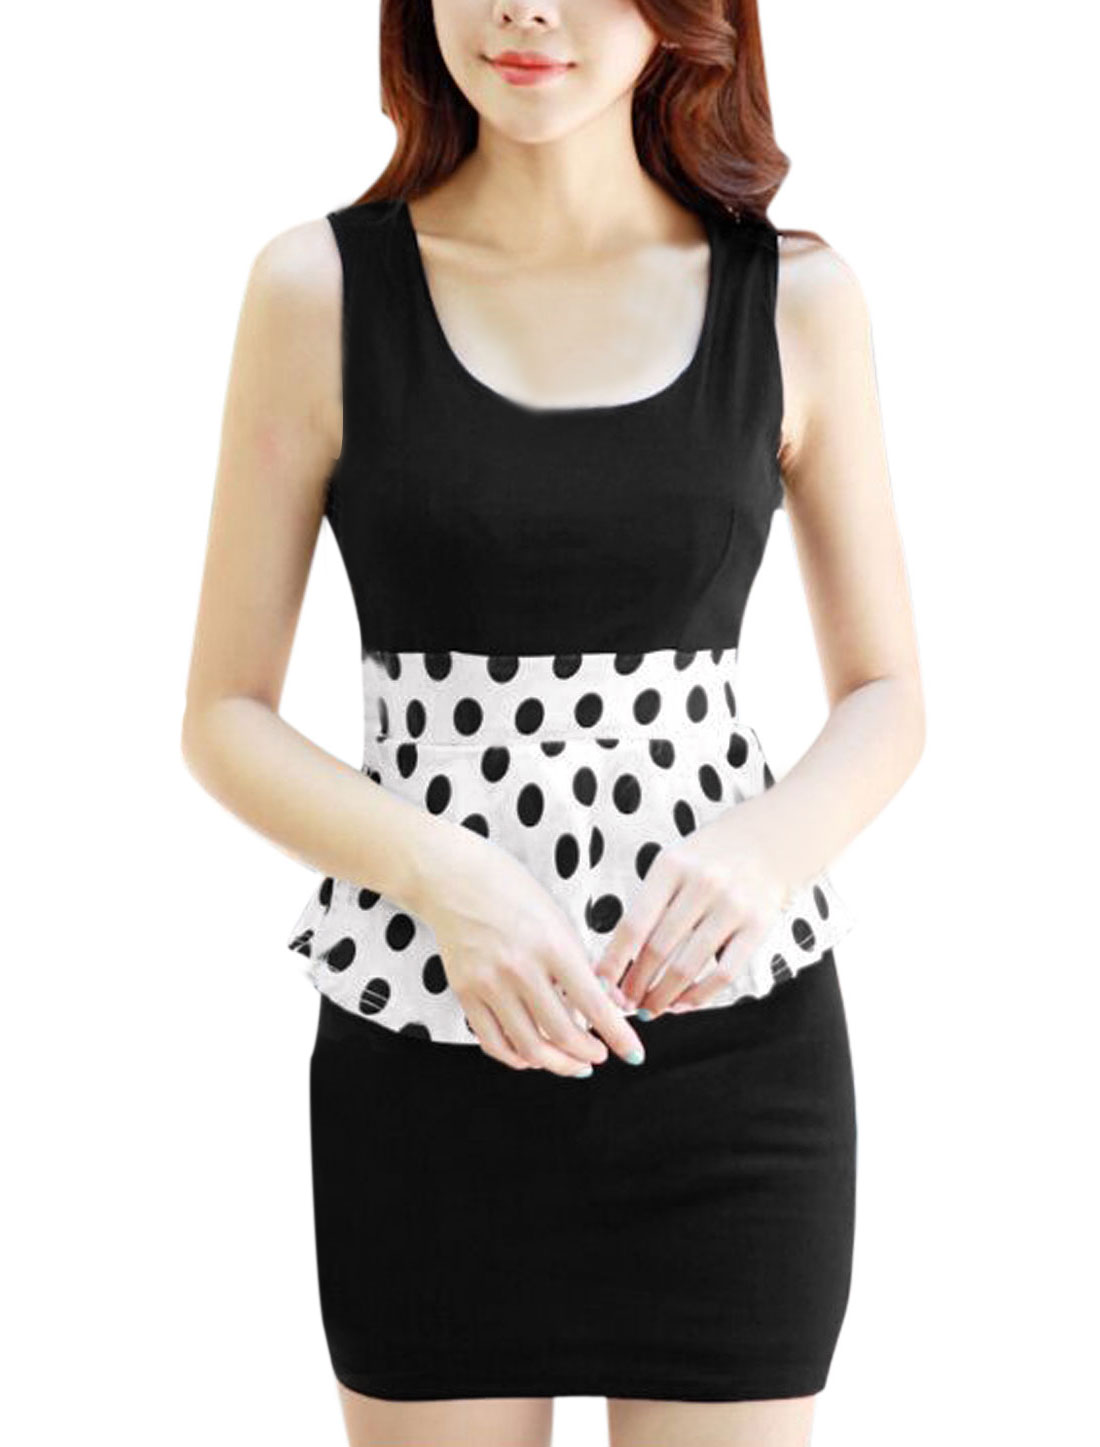 Lady Sleeveless Elastic Waist Dots Prints Colorblock Peplum Dress Black XS